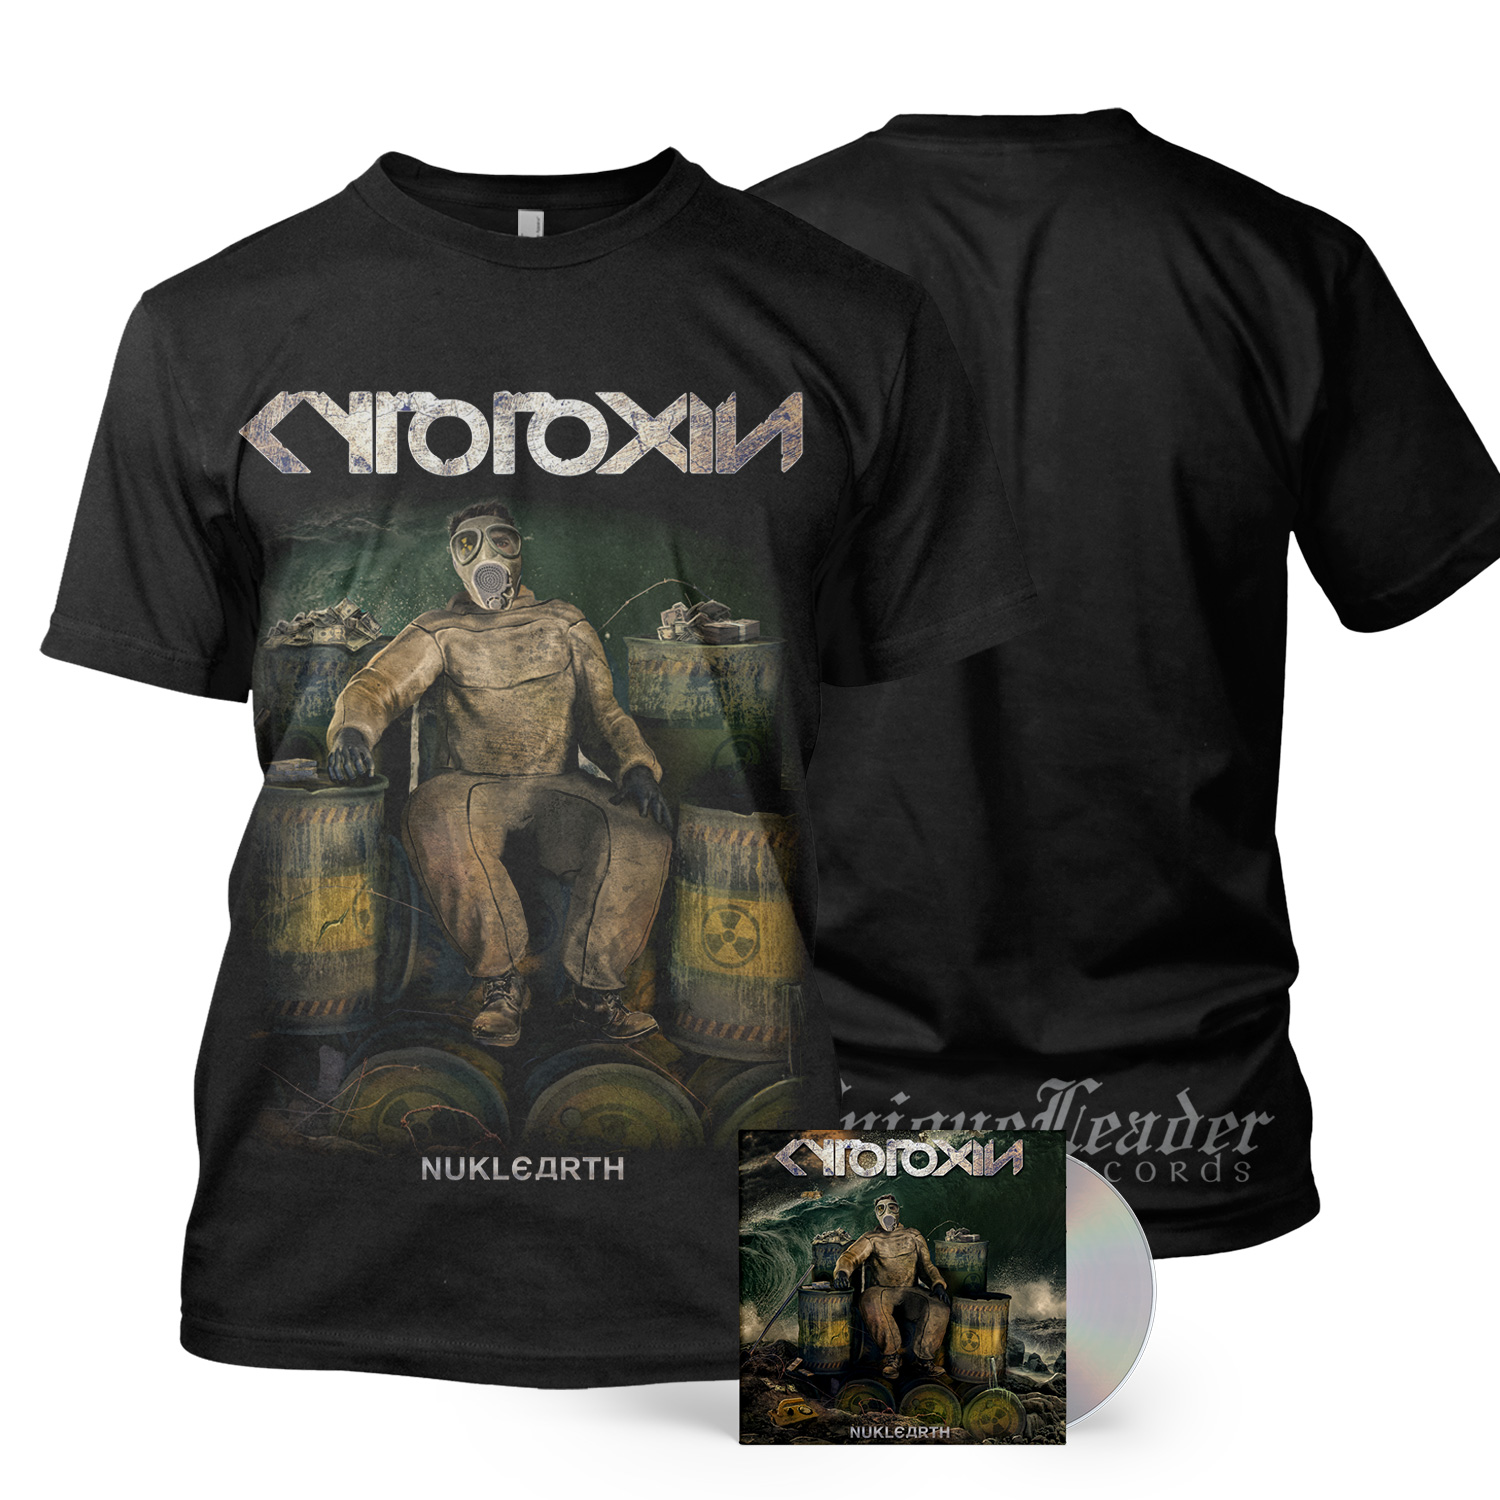 Nuklearth CD + Tee Bundle